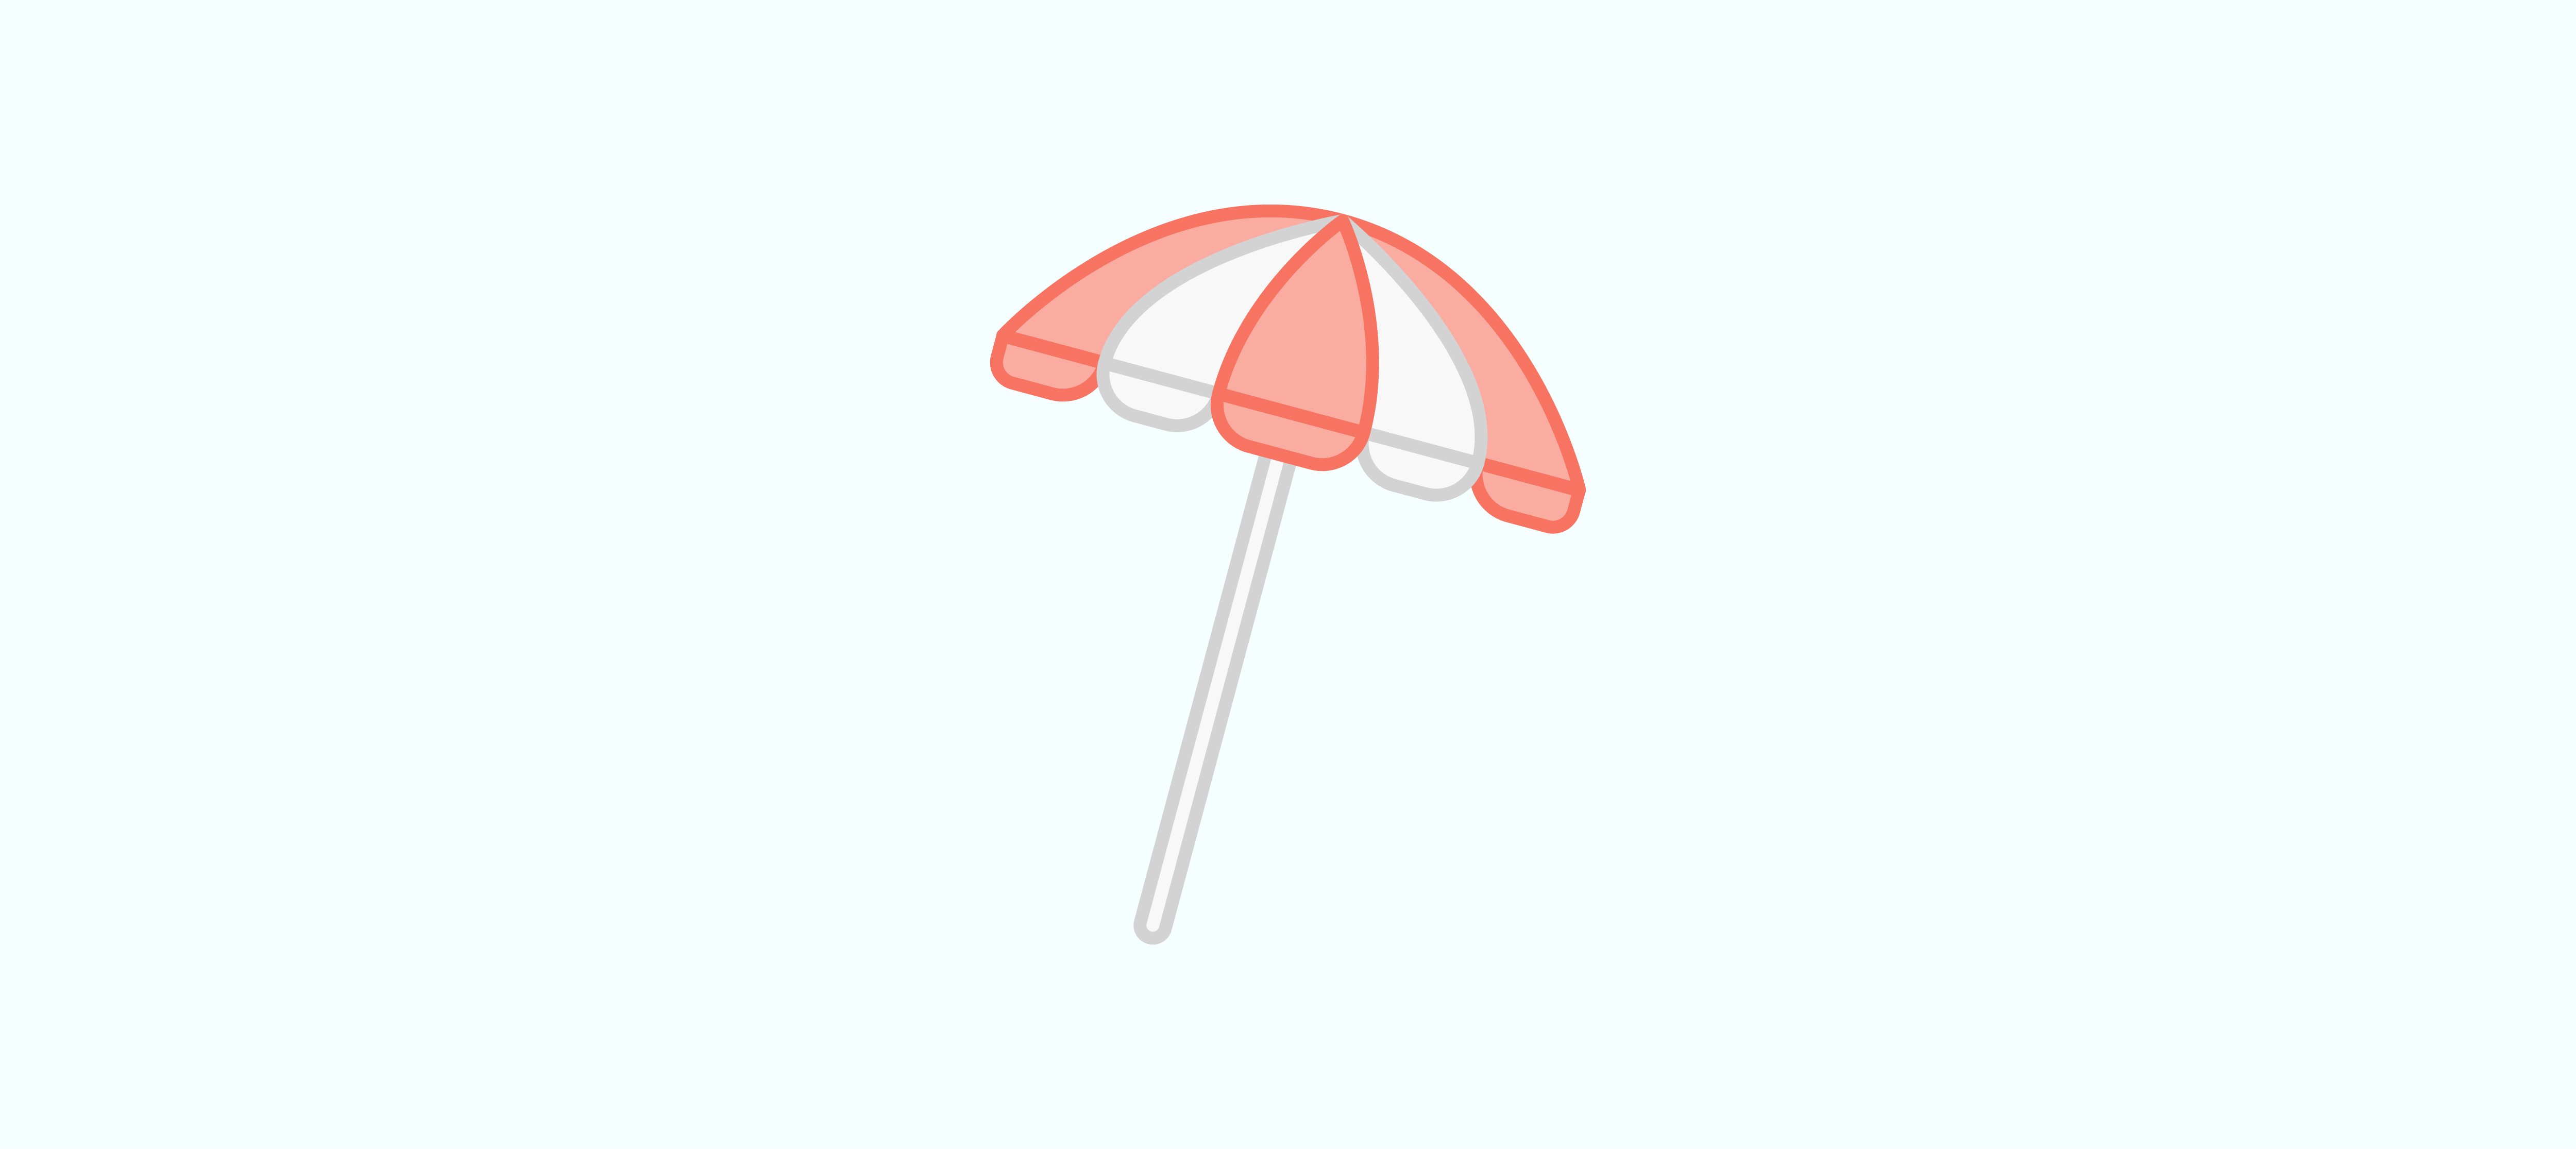 graphic of a red and white umbrella with a blue background